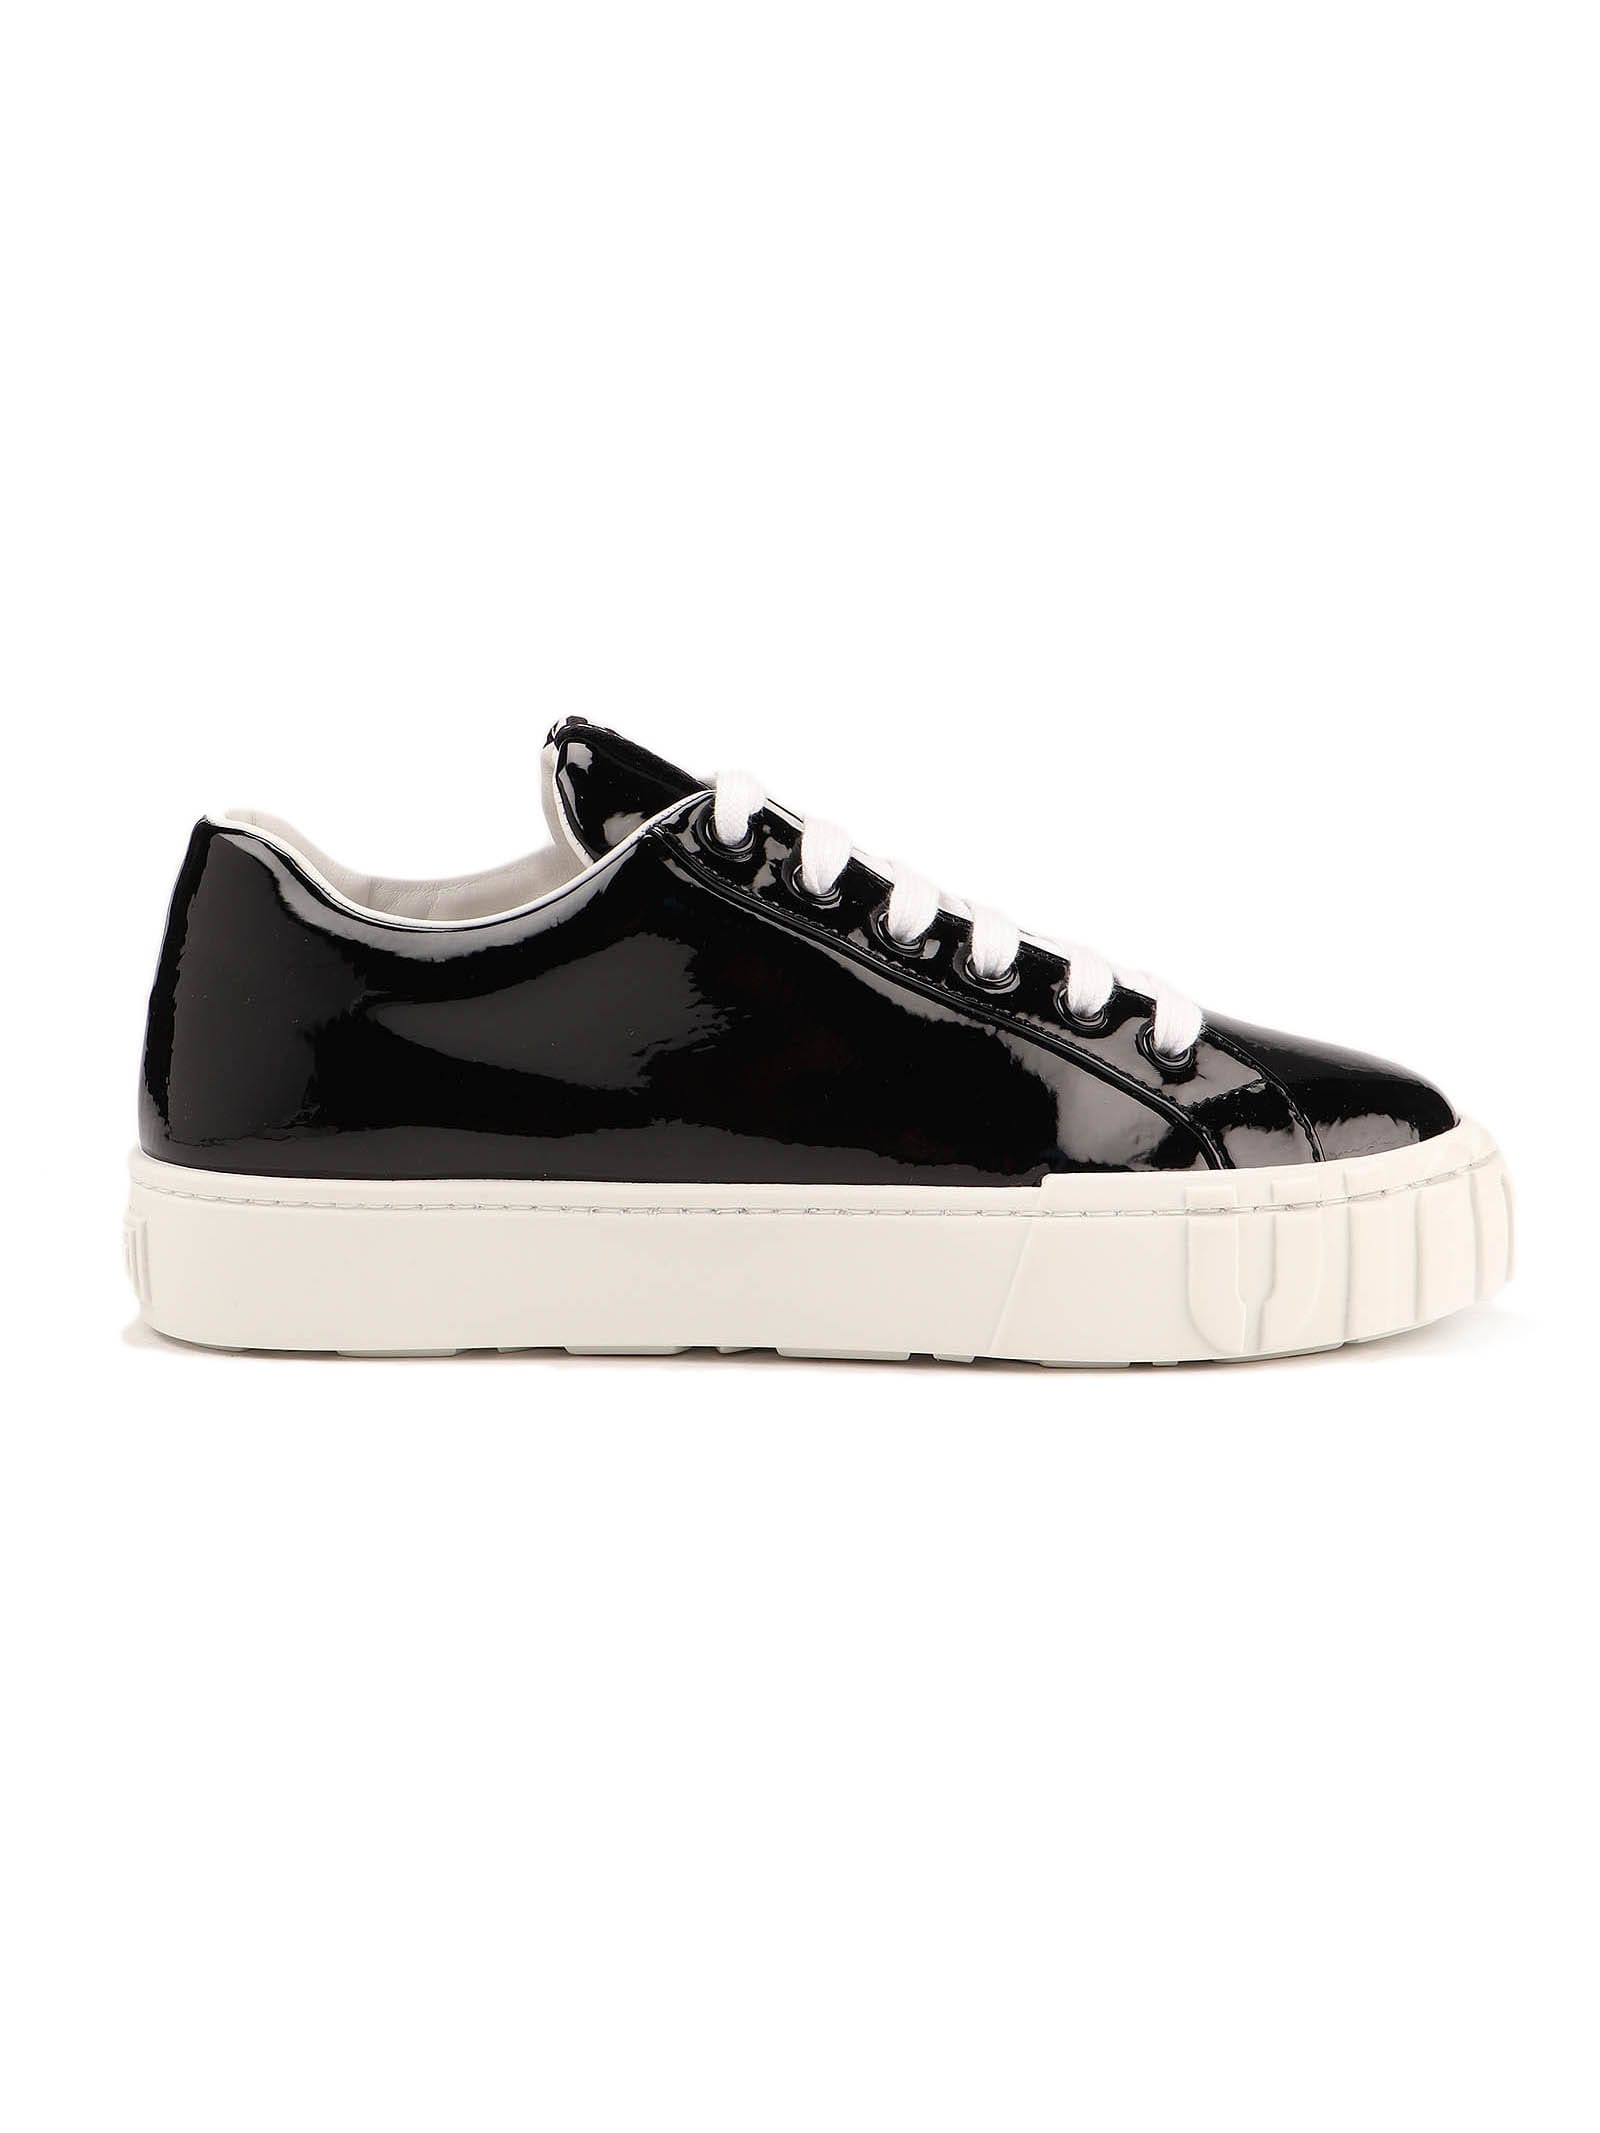 Miu Miu LACE UP SHOE